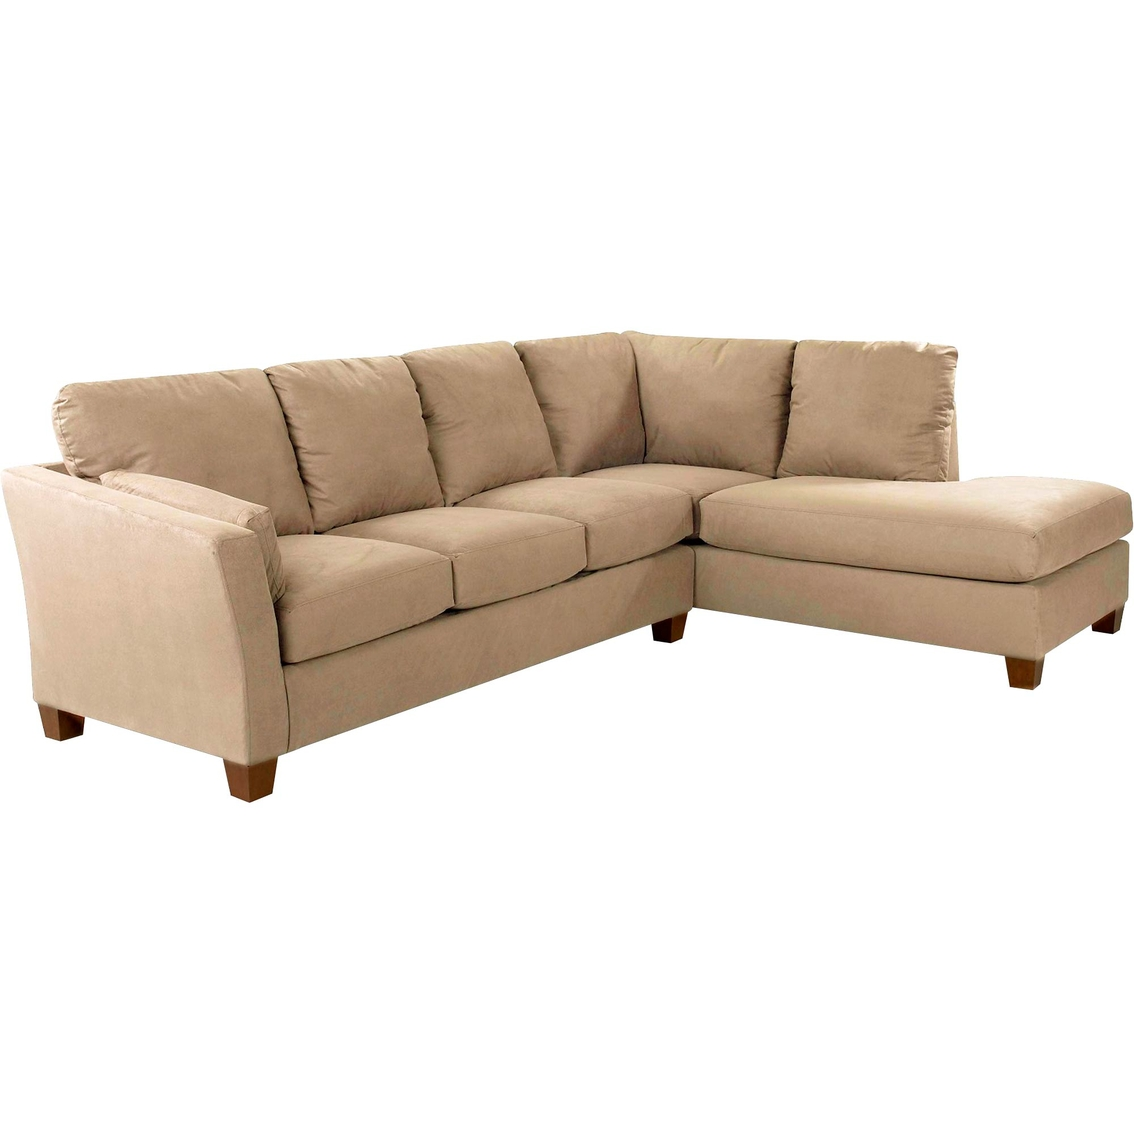 Klaussner Two Piece Drew Sectional In Libre Taupe Sofas